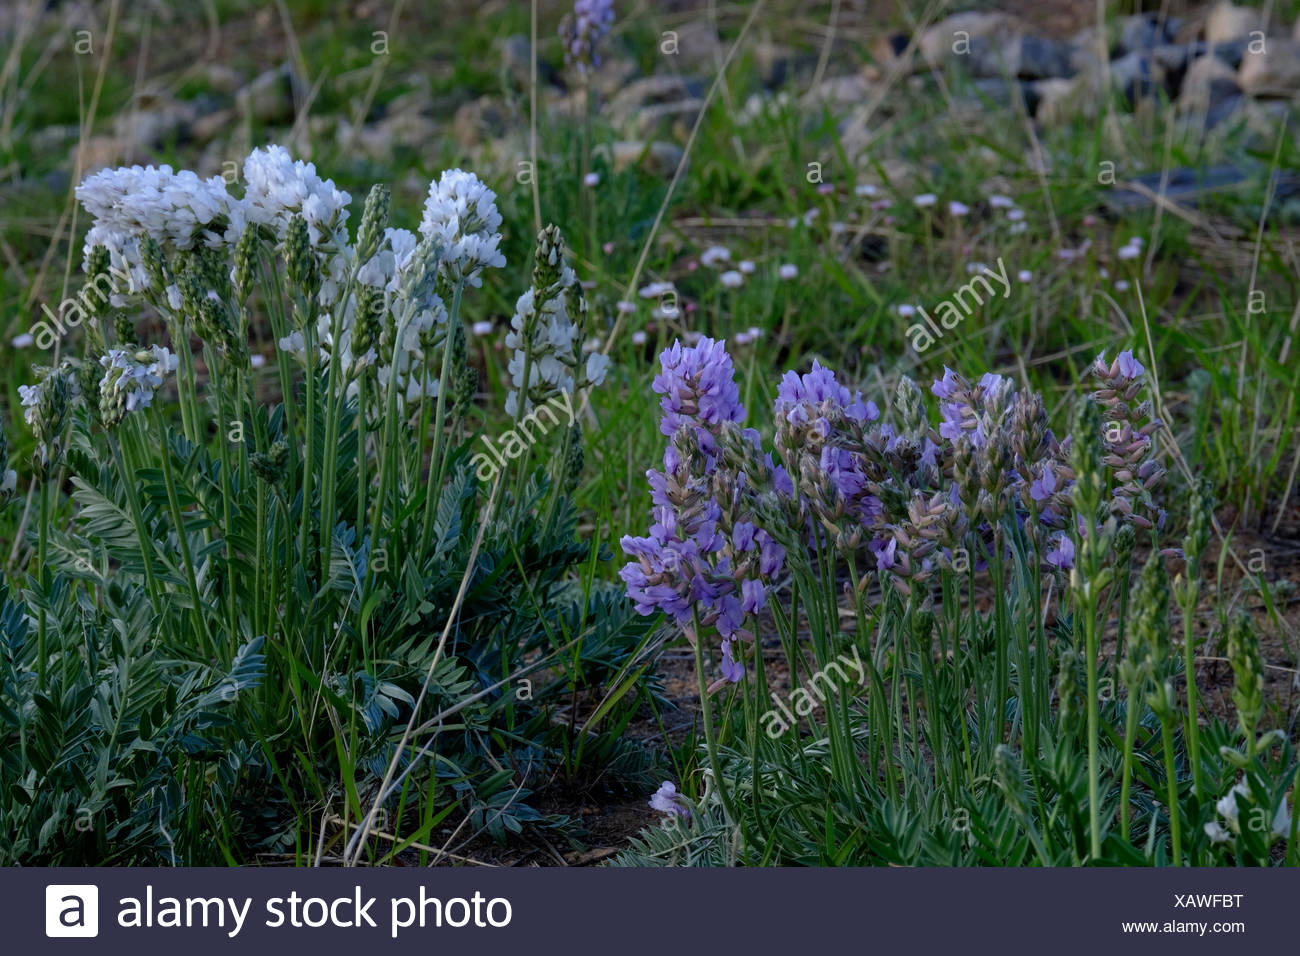 Lavender And White Wild Flowers Grow Along The Roadside In Rocky